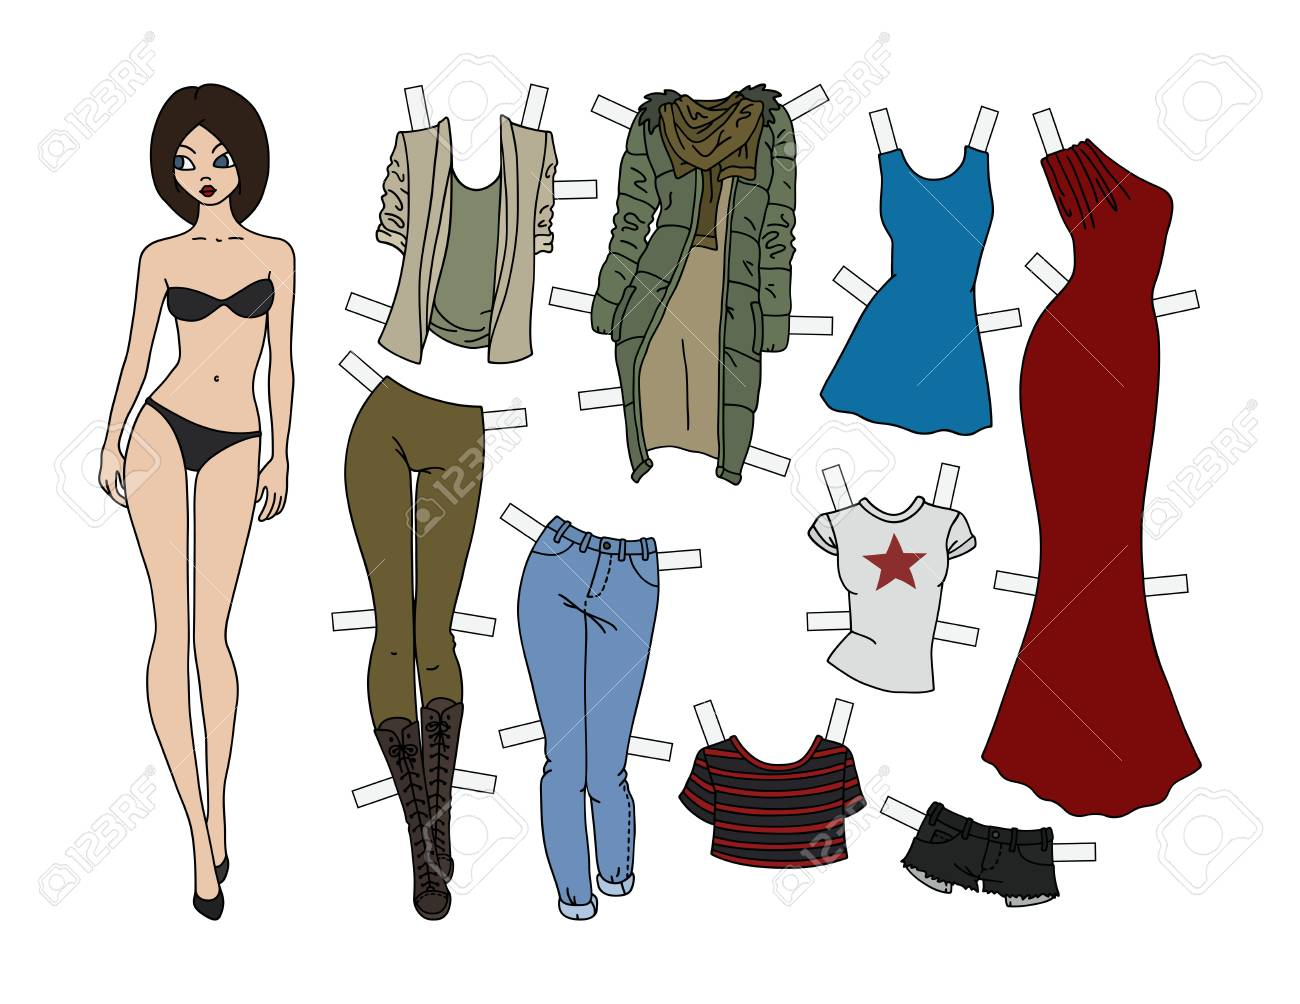 Brunette paper doll with cutout clothes, vector illustration. - 91032482